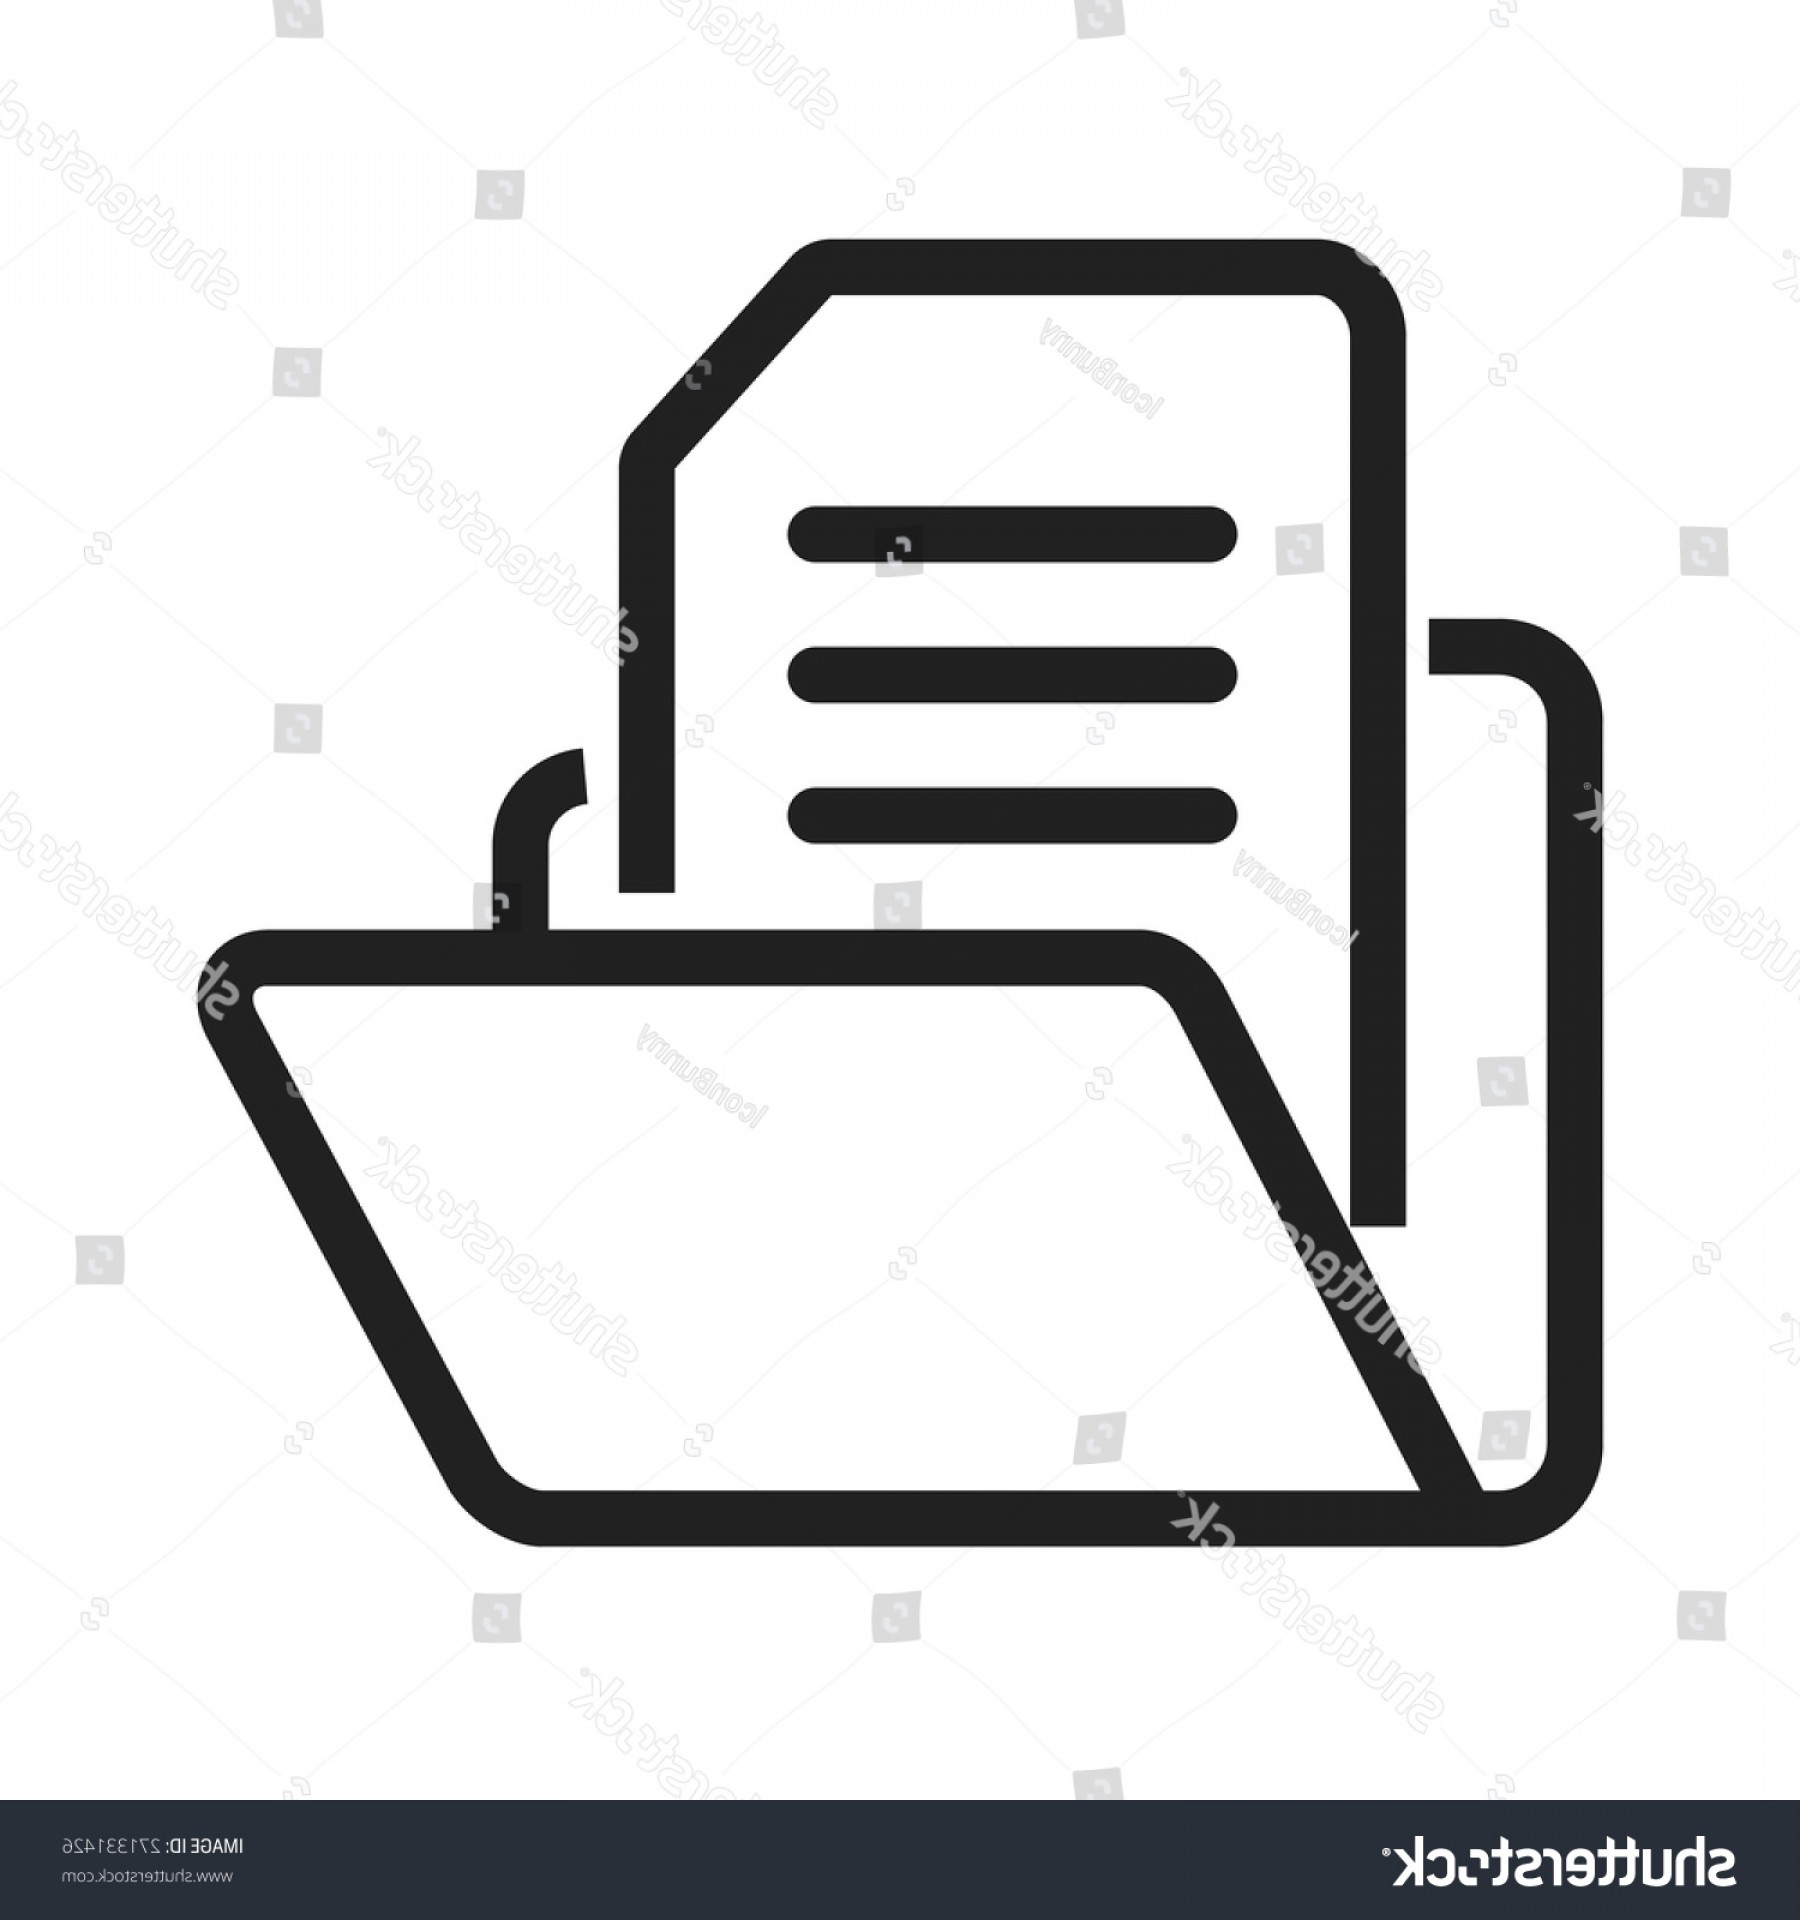 1800x1920 File Folder Document Icon Vector Image Lazttweet